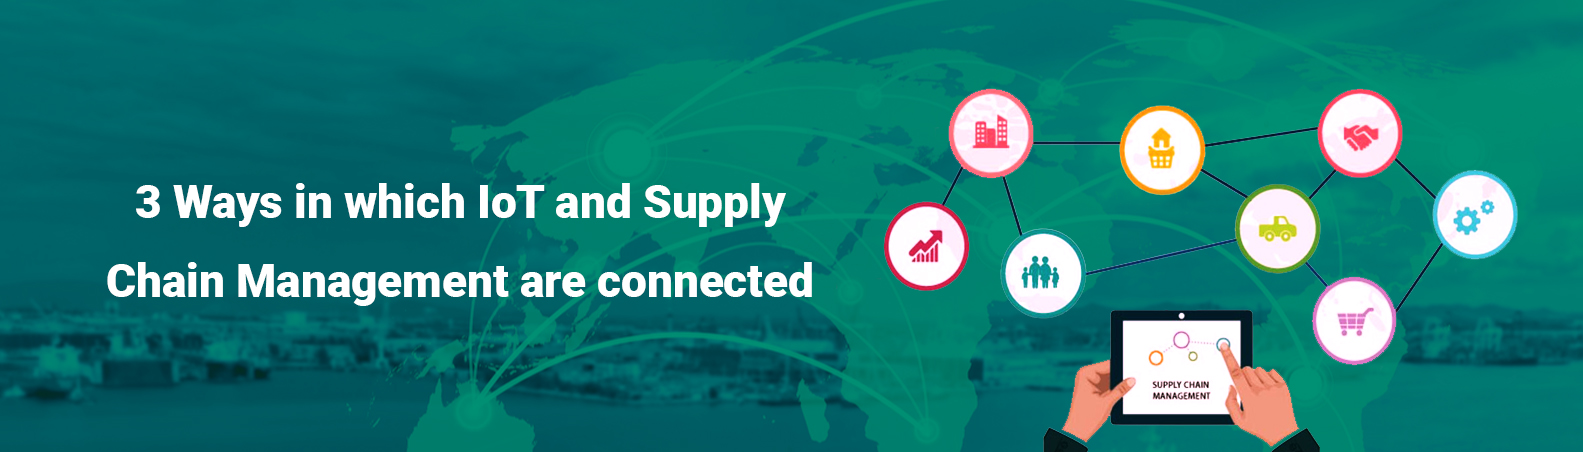 3 Ways in which IoT and Supply Chain Management are connected